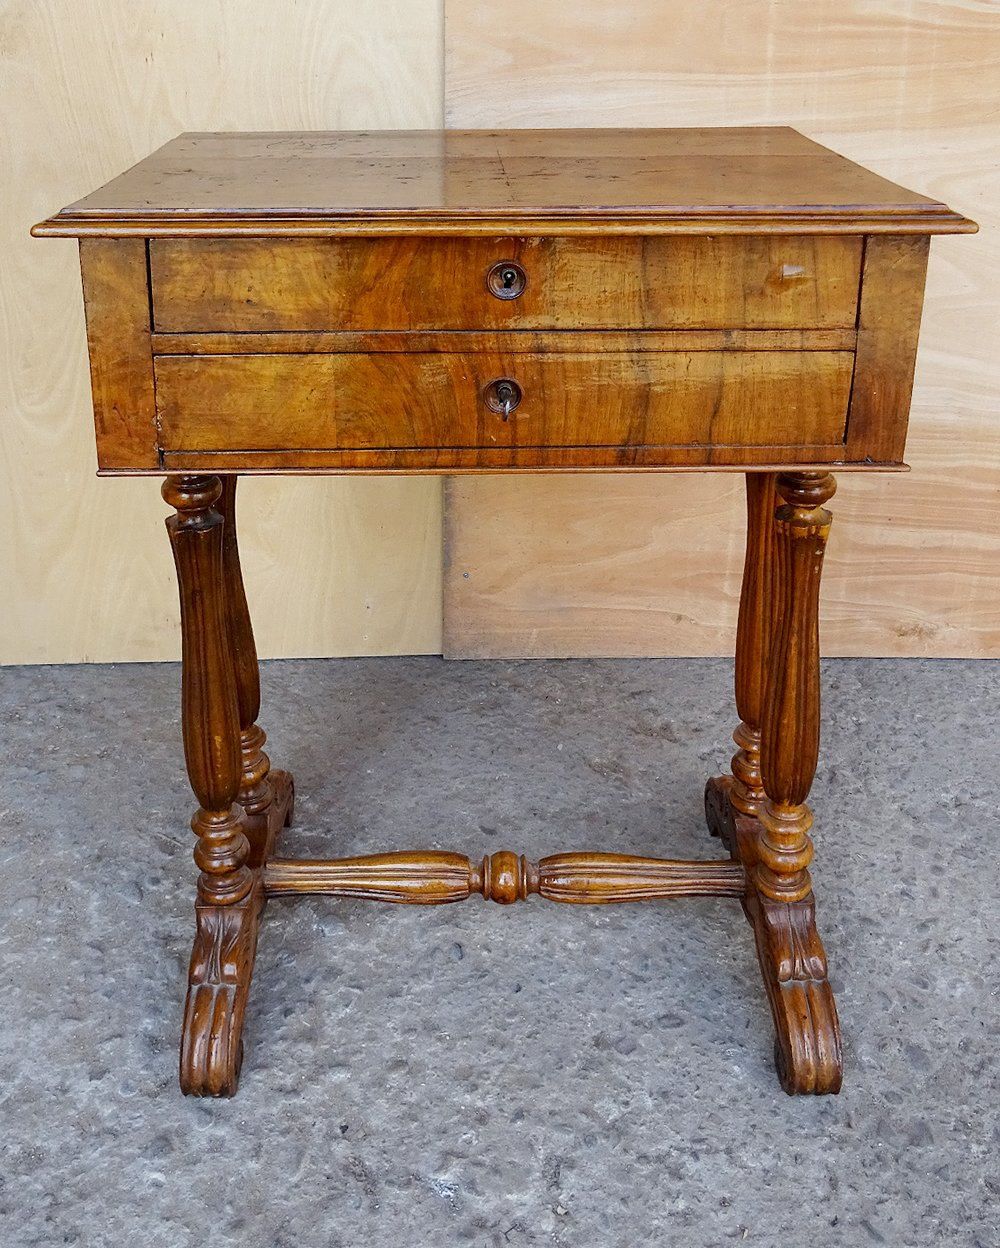 ... Antique French Walnut and Bulr Wood Vanity Armoire Stand Desk ... - Antique French Walnut And Burl Wood Vanity Armoire Stand Desk